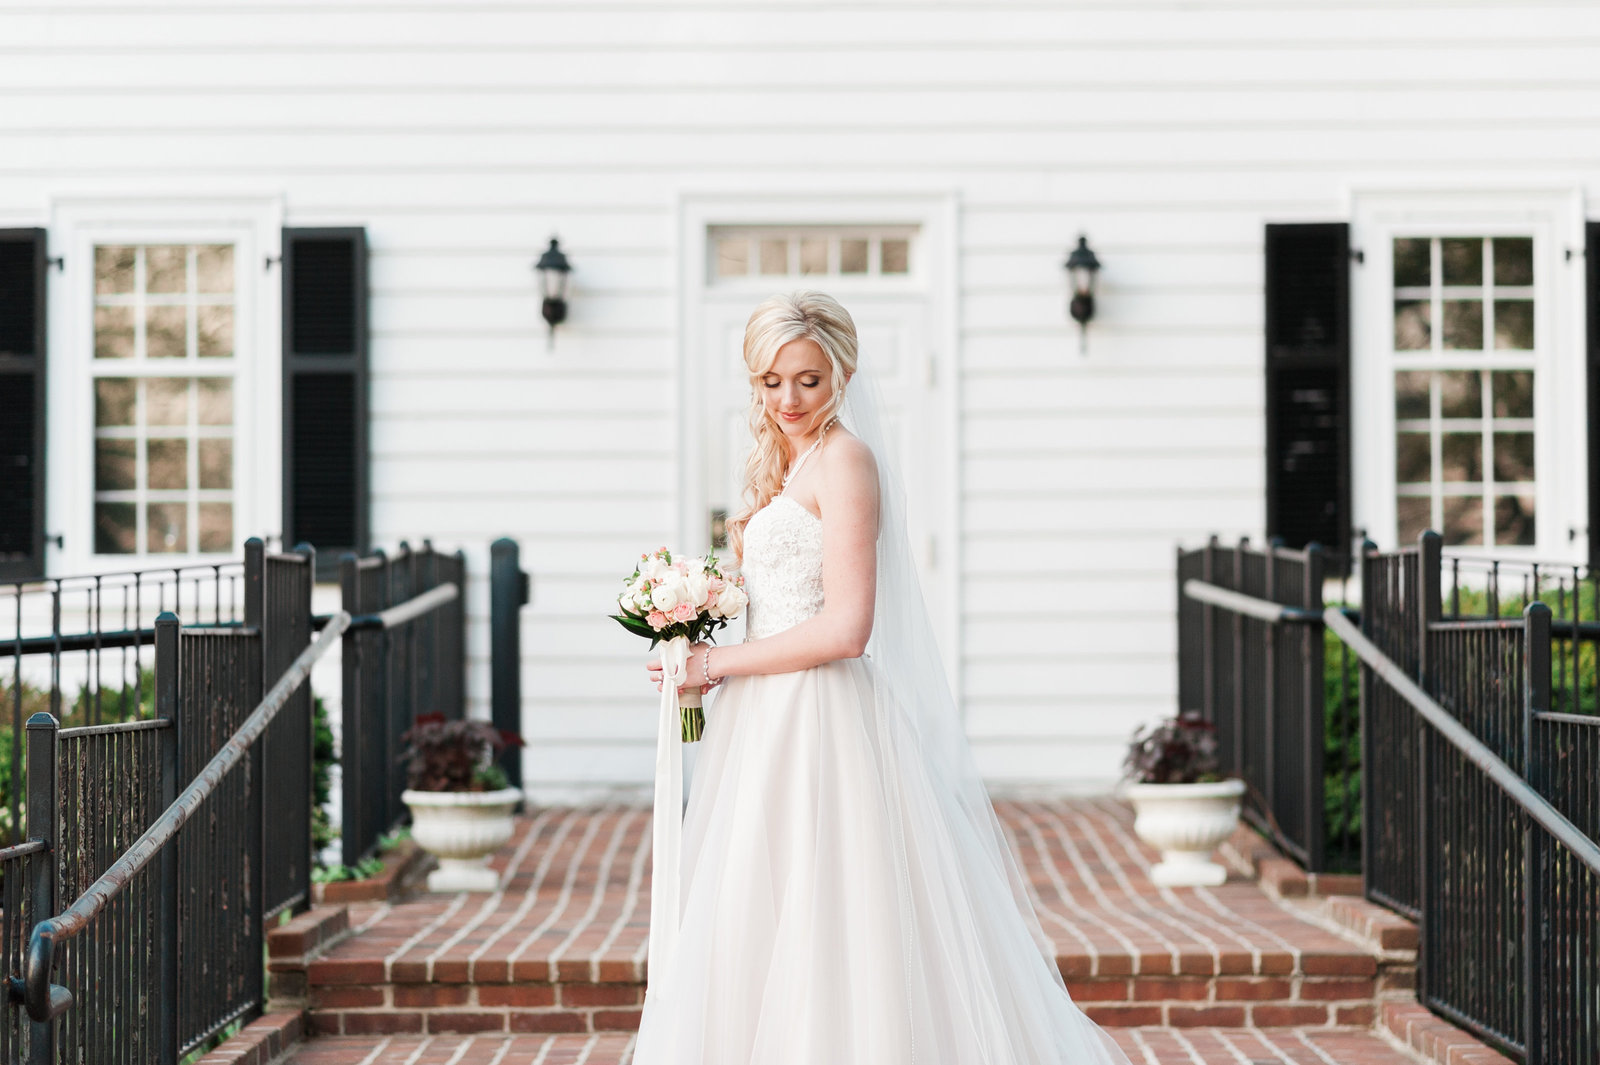 Morgan-Bridals-171